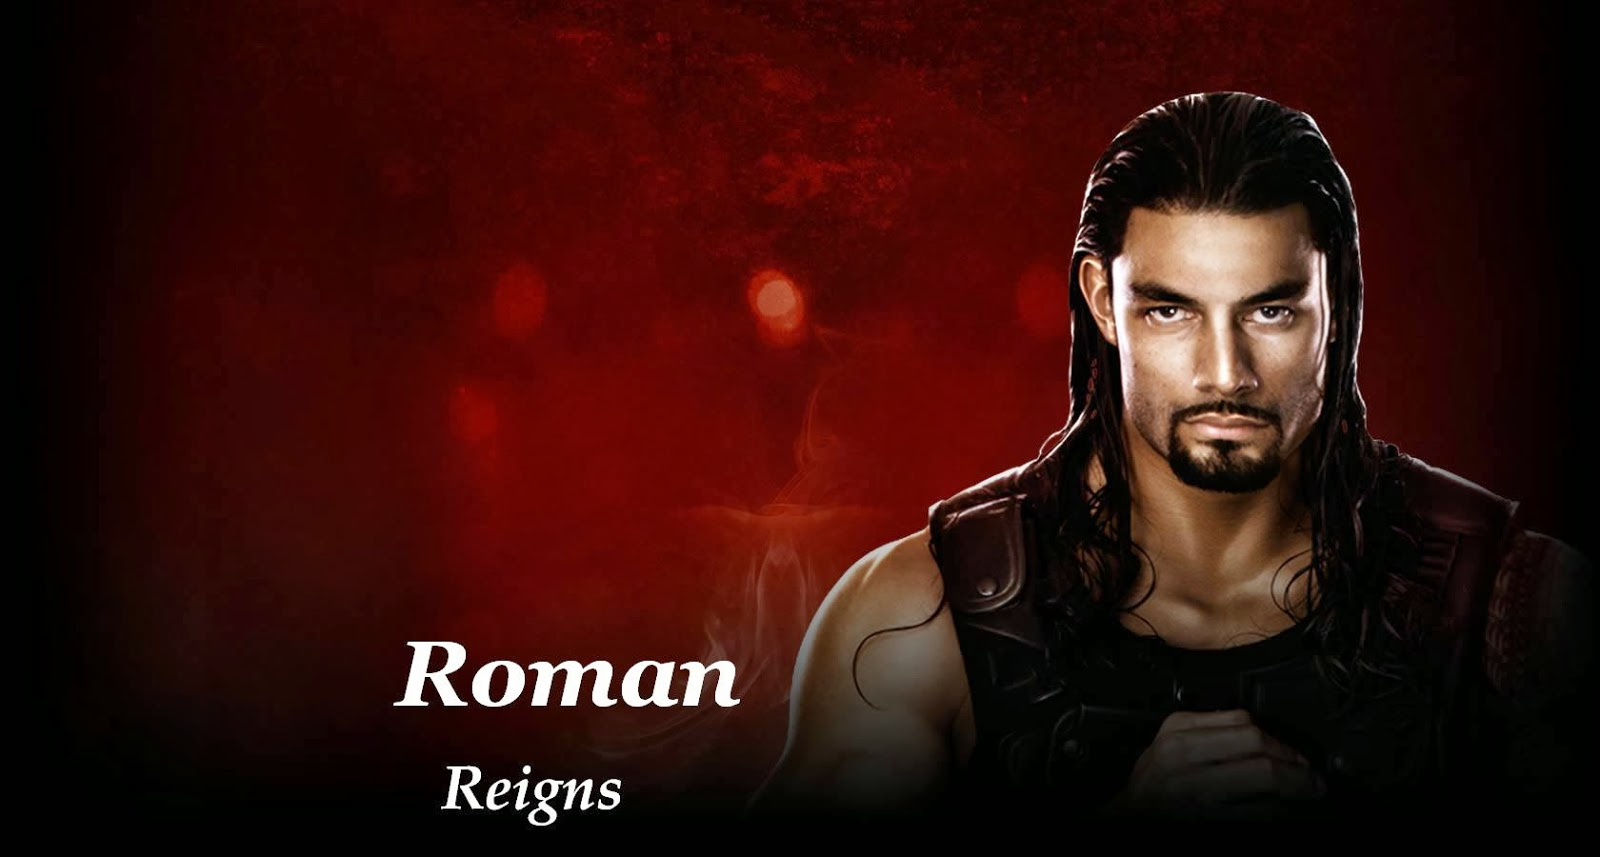 roman reigns hd wallpapers 2014 roman reigns hd wallpapers 2014 roman ...